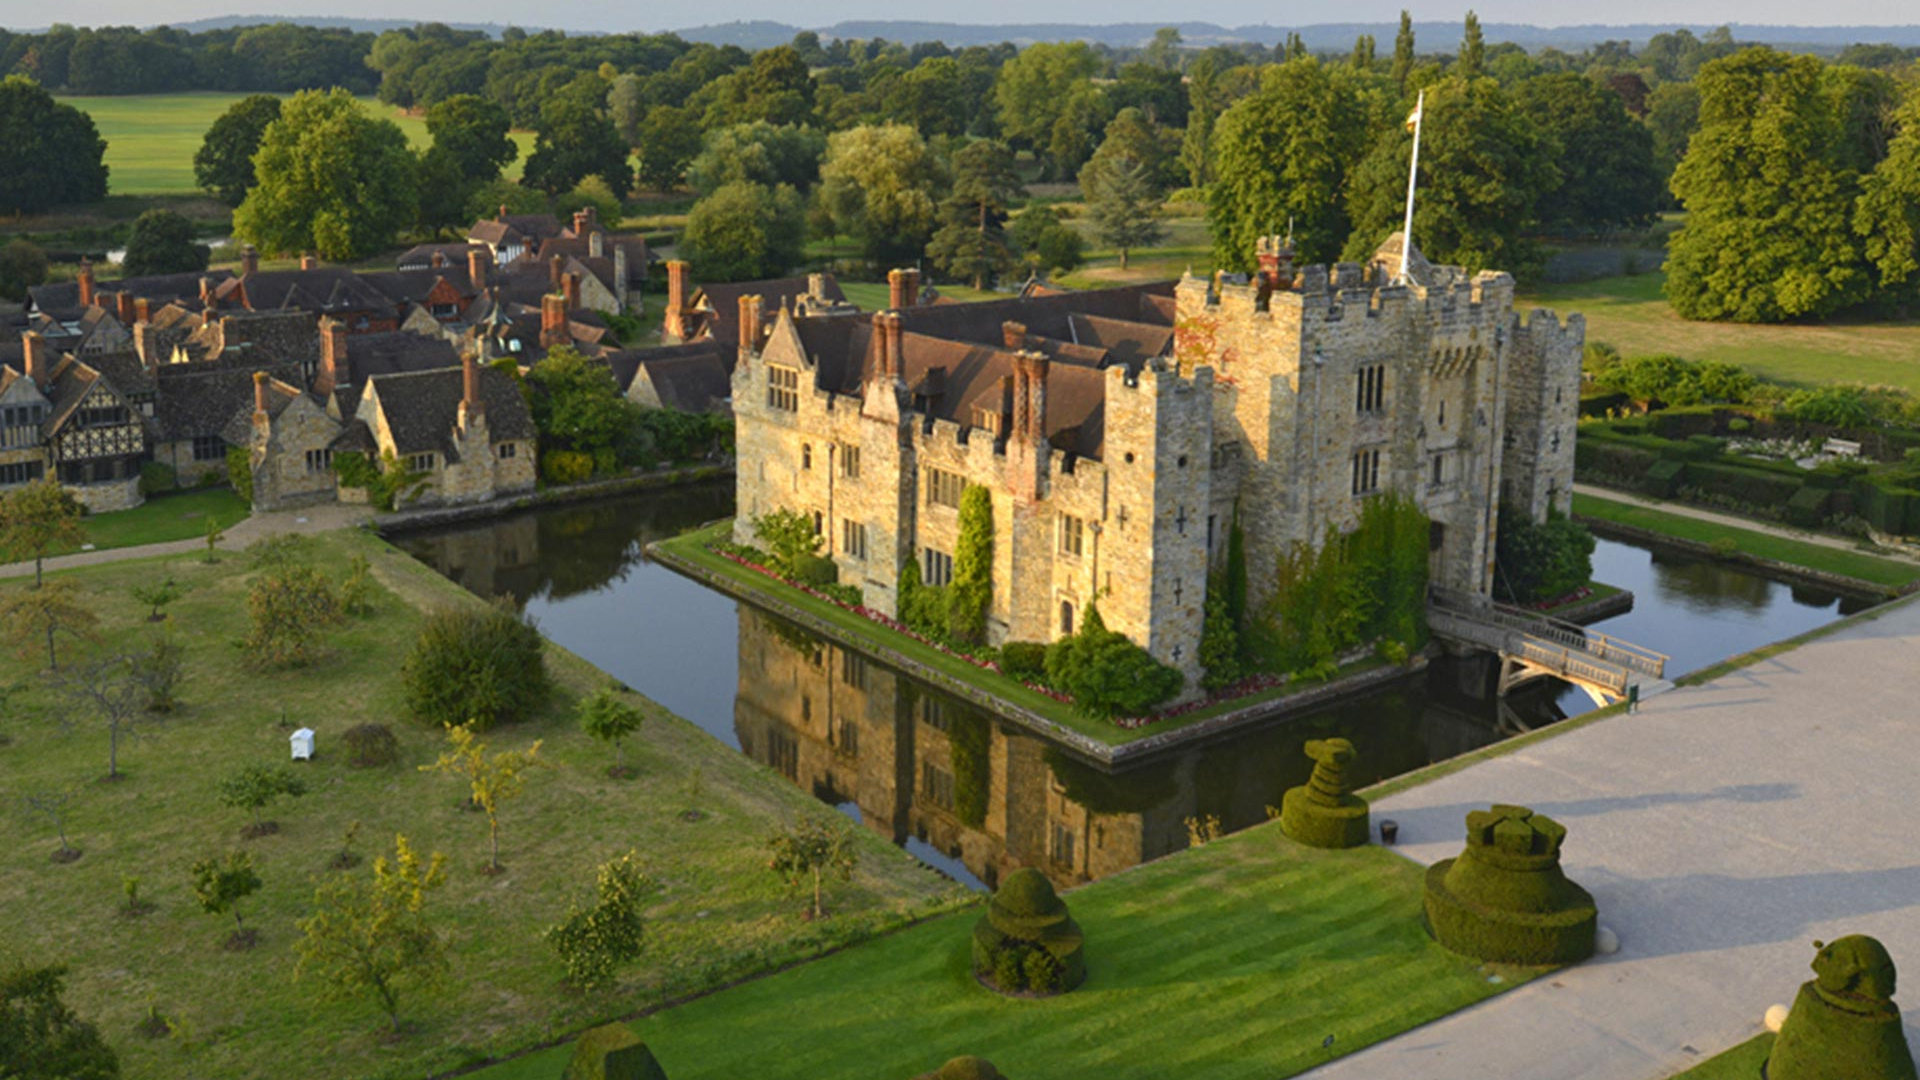 Aerial view of Hever Castle, Kent